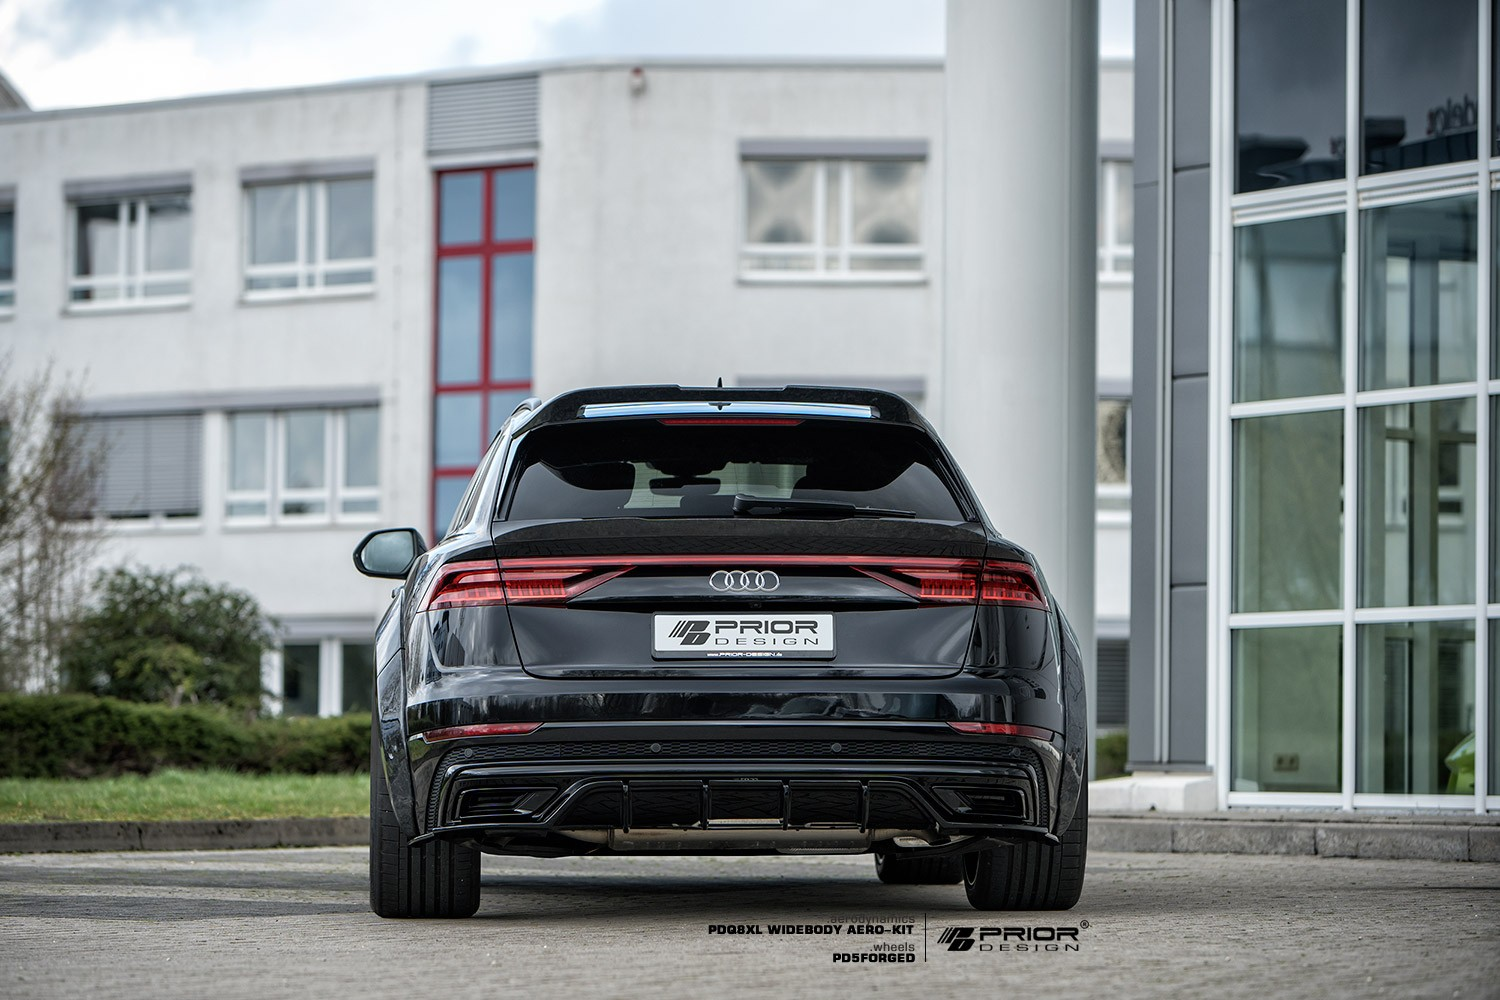 Audi-Q8-PDQ8XL-by-Prior-Design-4